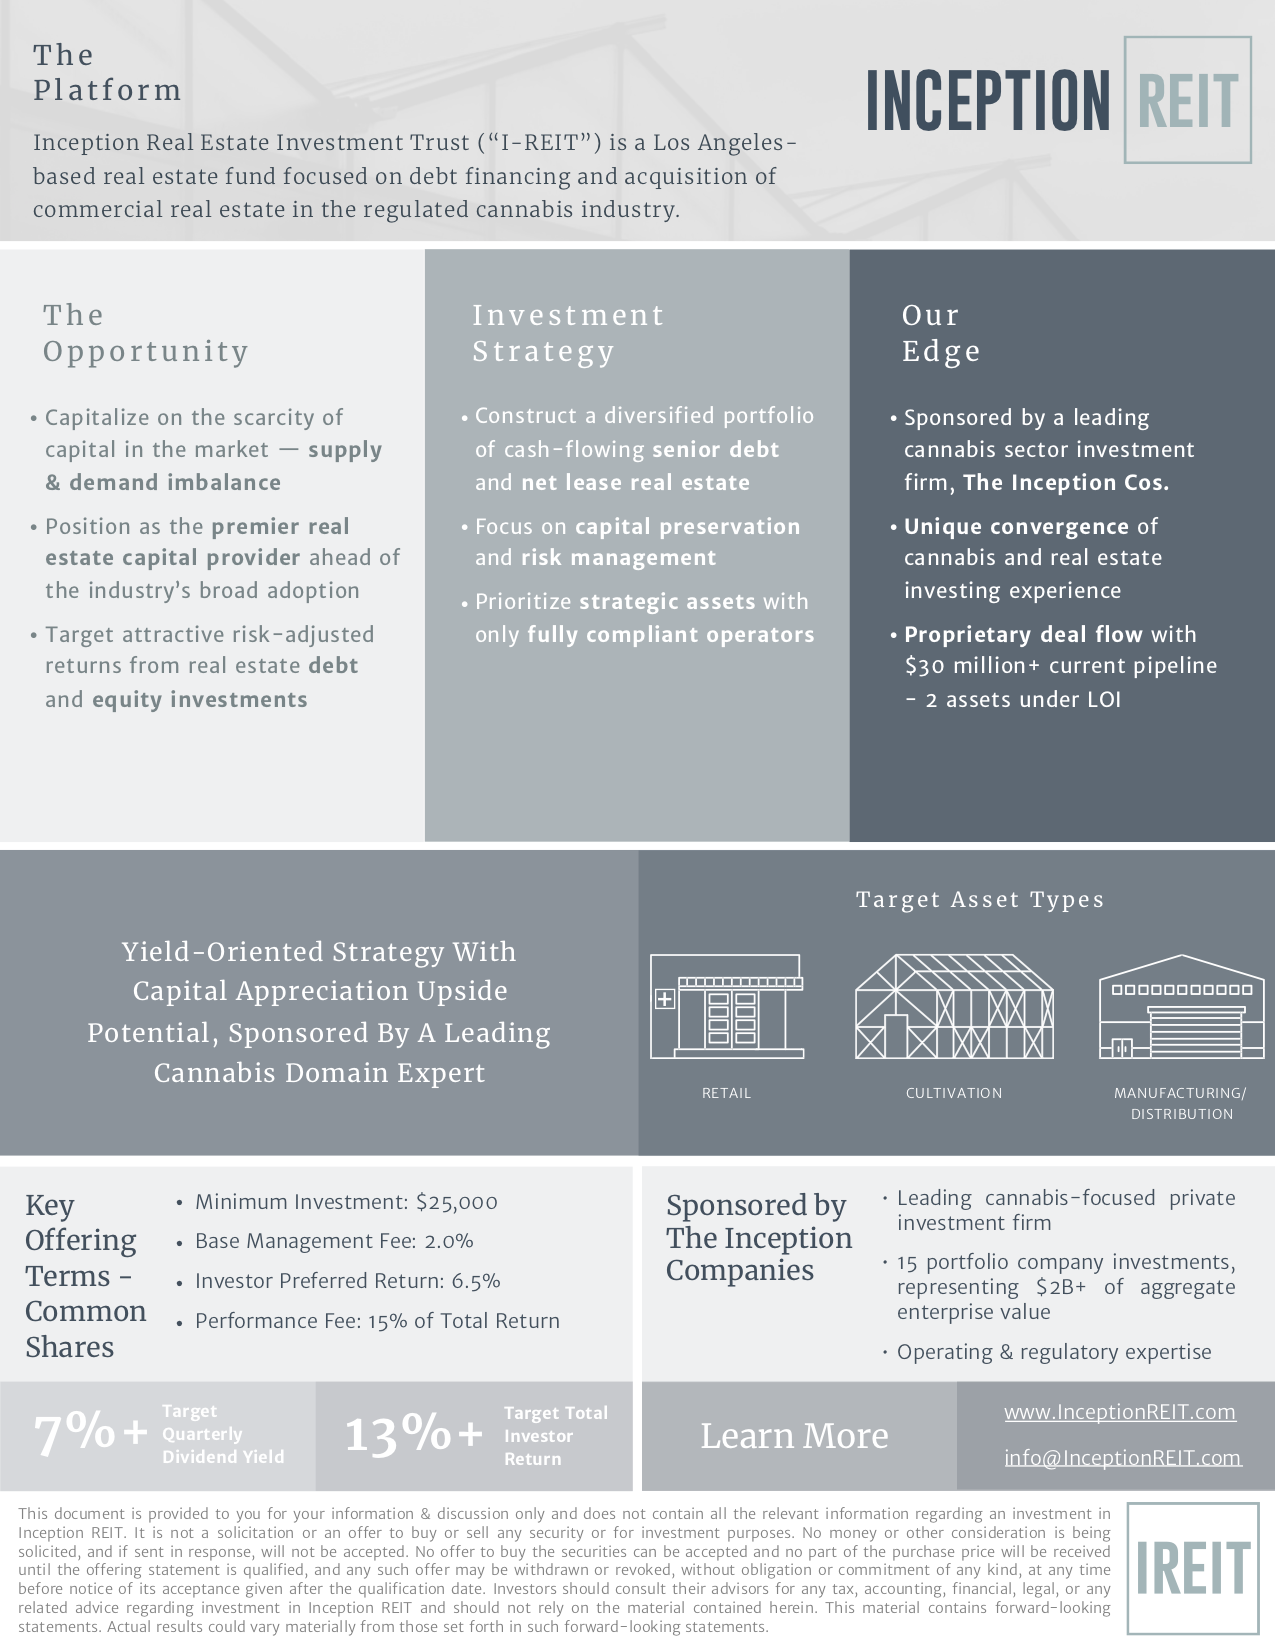 Inception REIT One Pager.png